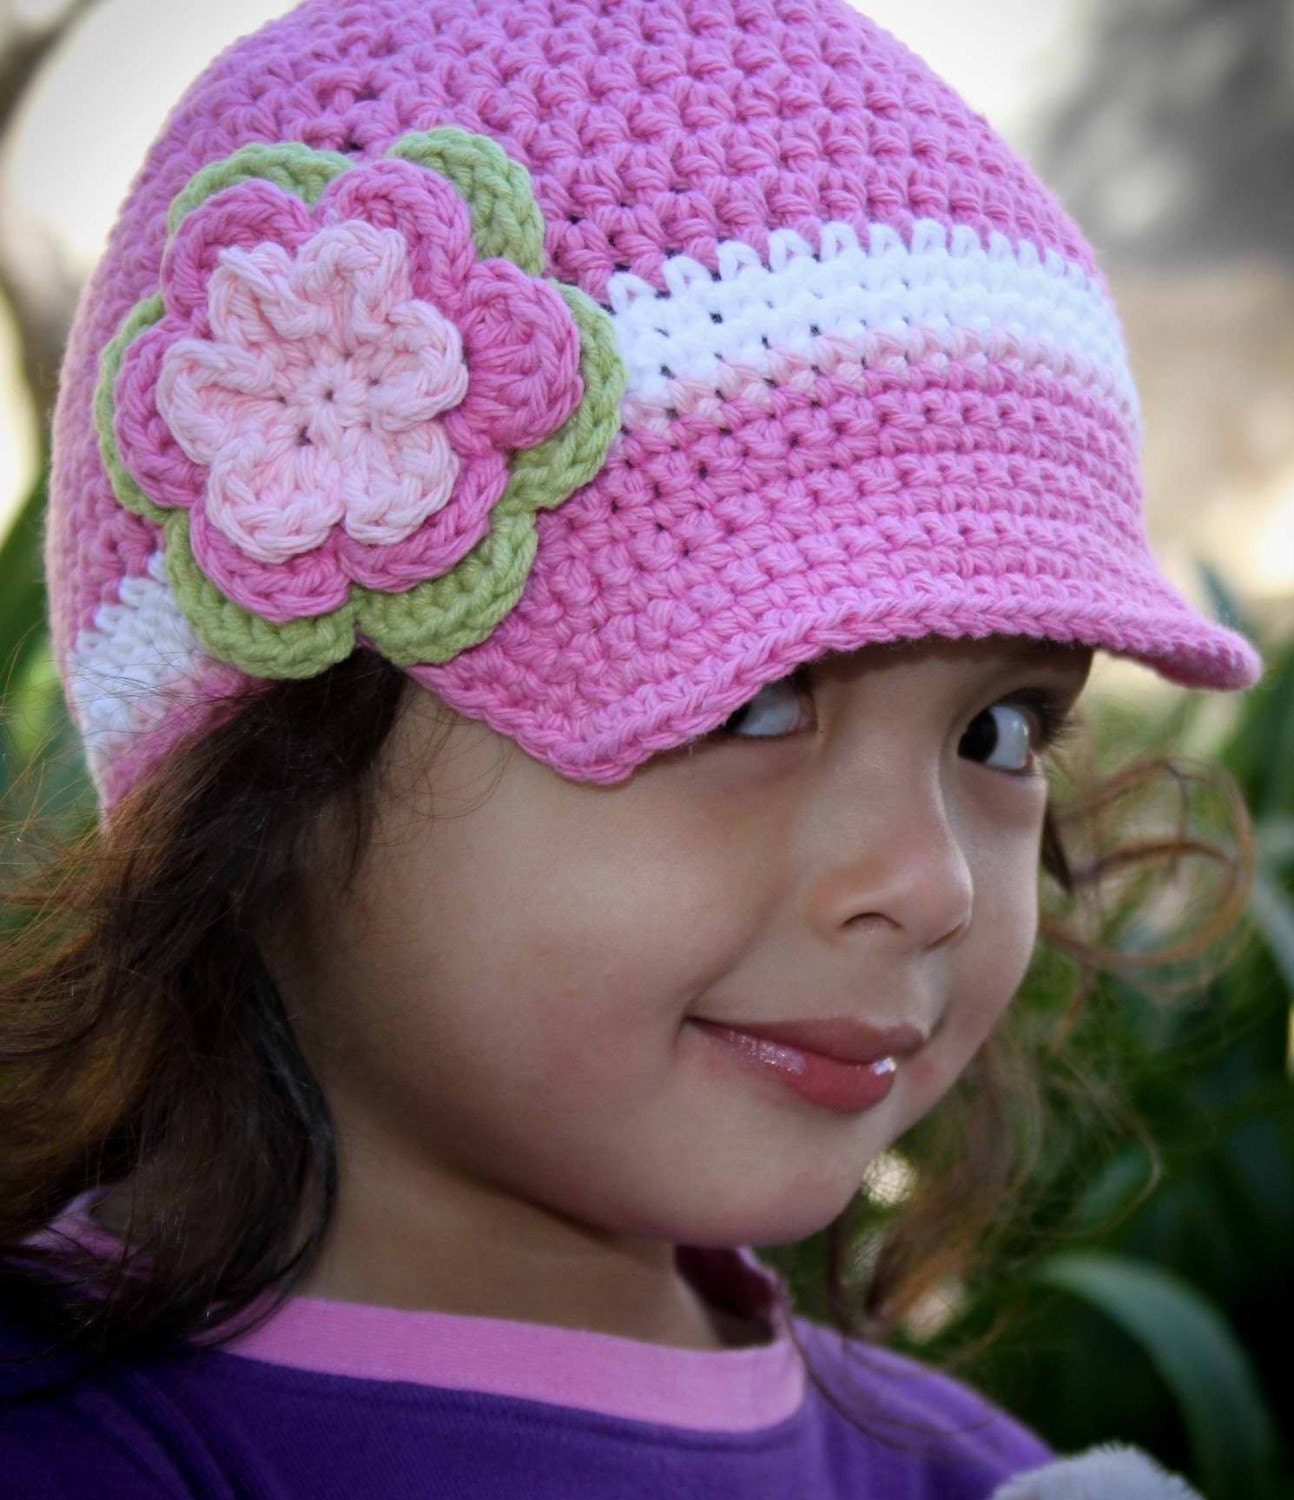 Free Crochet Pattern Toddler Newsboy Cap : Crochet Hat Pattern Easy Peasy Newsboy Unisex Cap Crochet